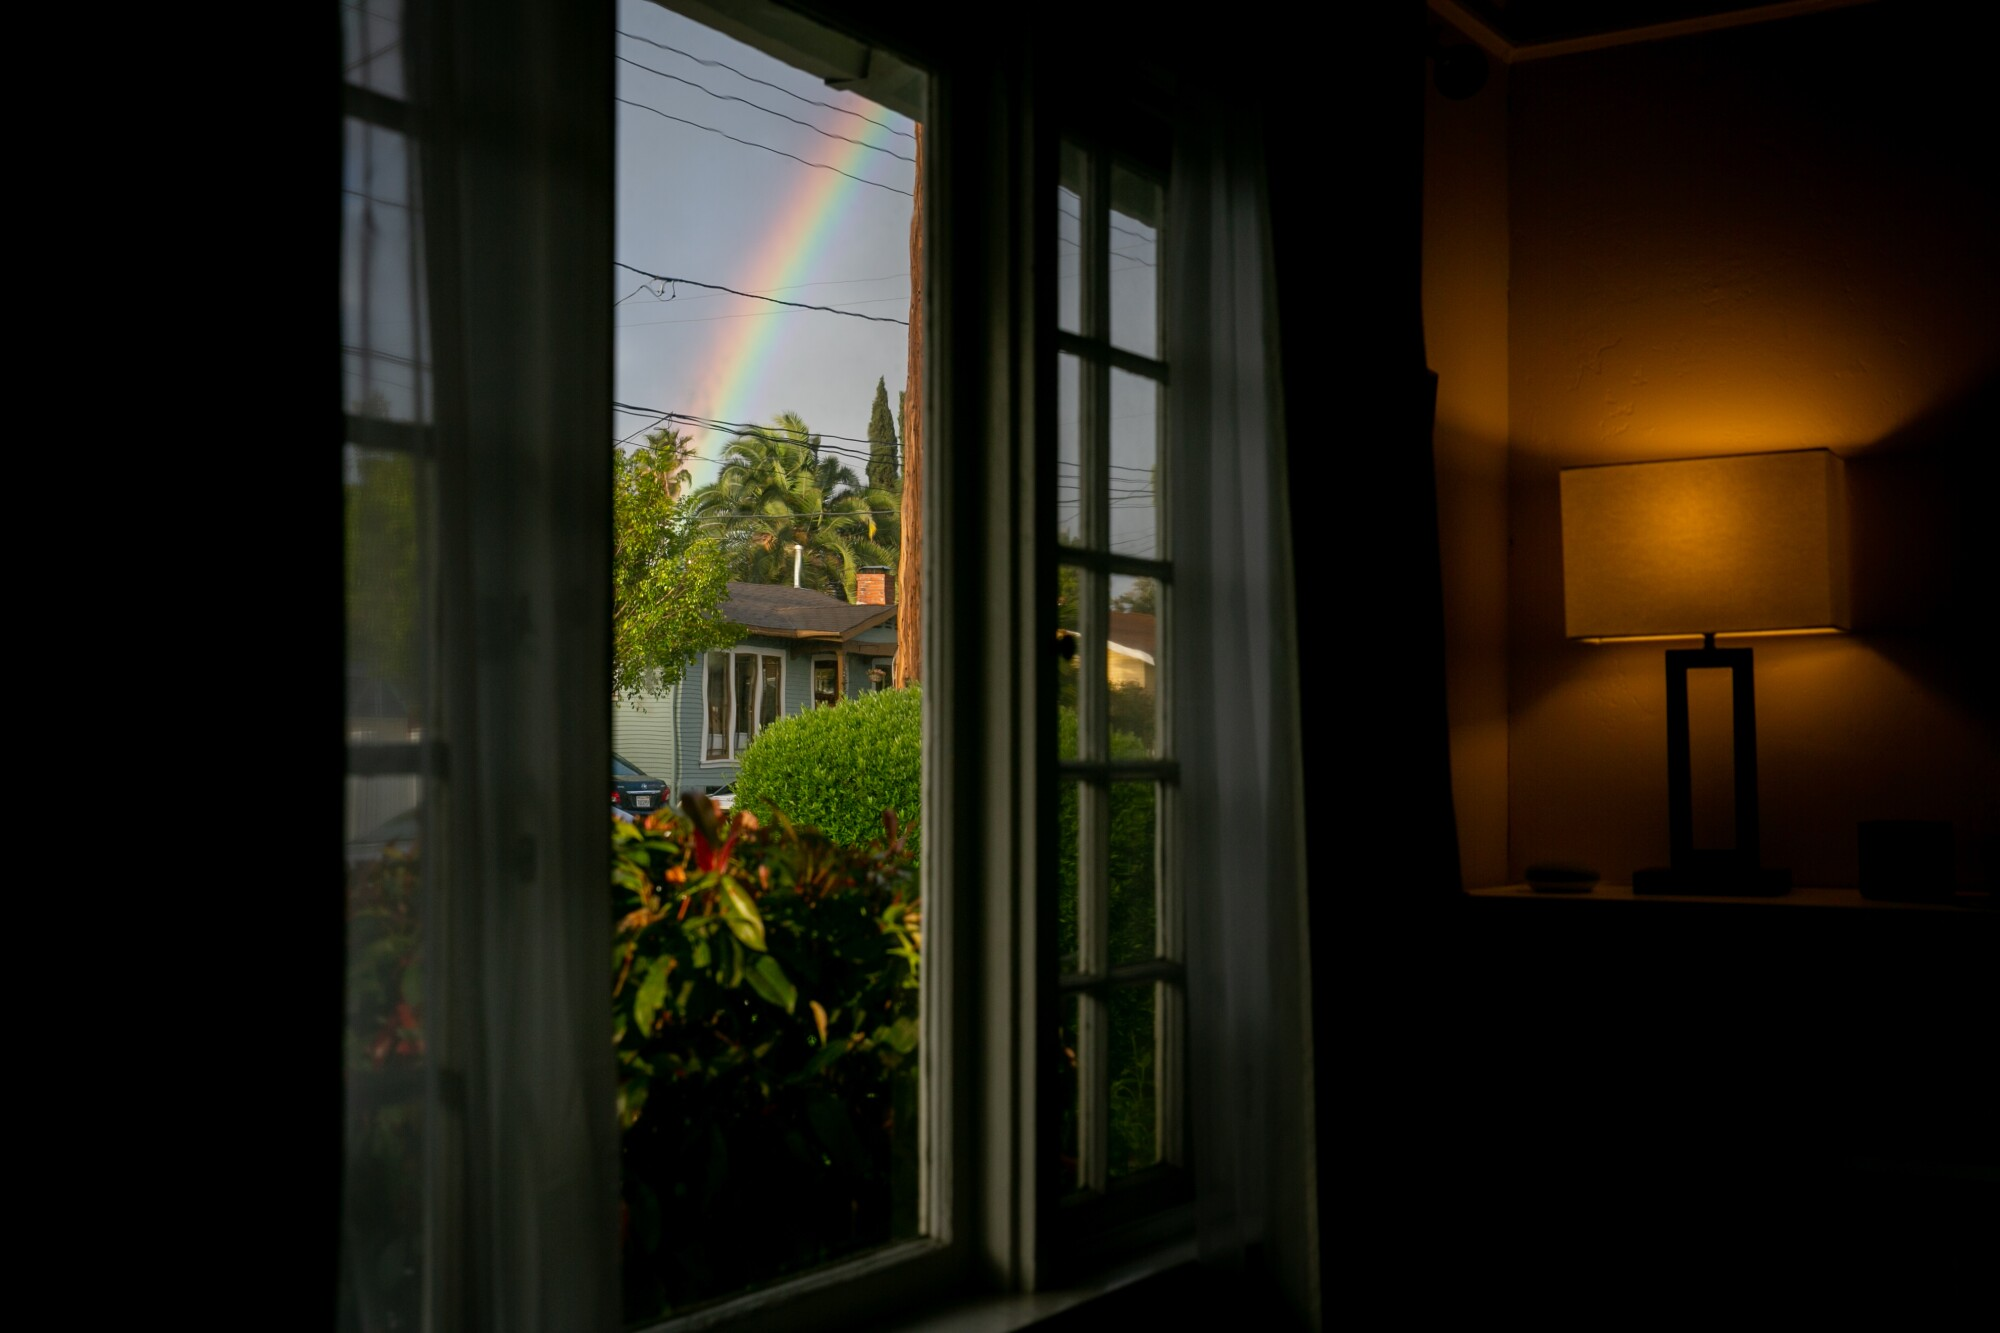 A rainbow peeks through the clouds after a rainfall as seen from the photographer's home on March 26, 2020 in San Diego, California. Air quality has been consistently good in San Diego as businesses shuttered and vehicles stay off the road.